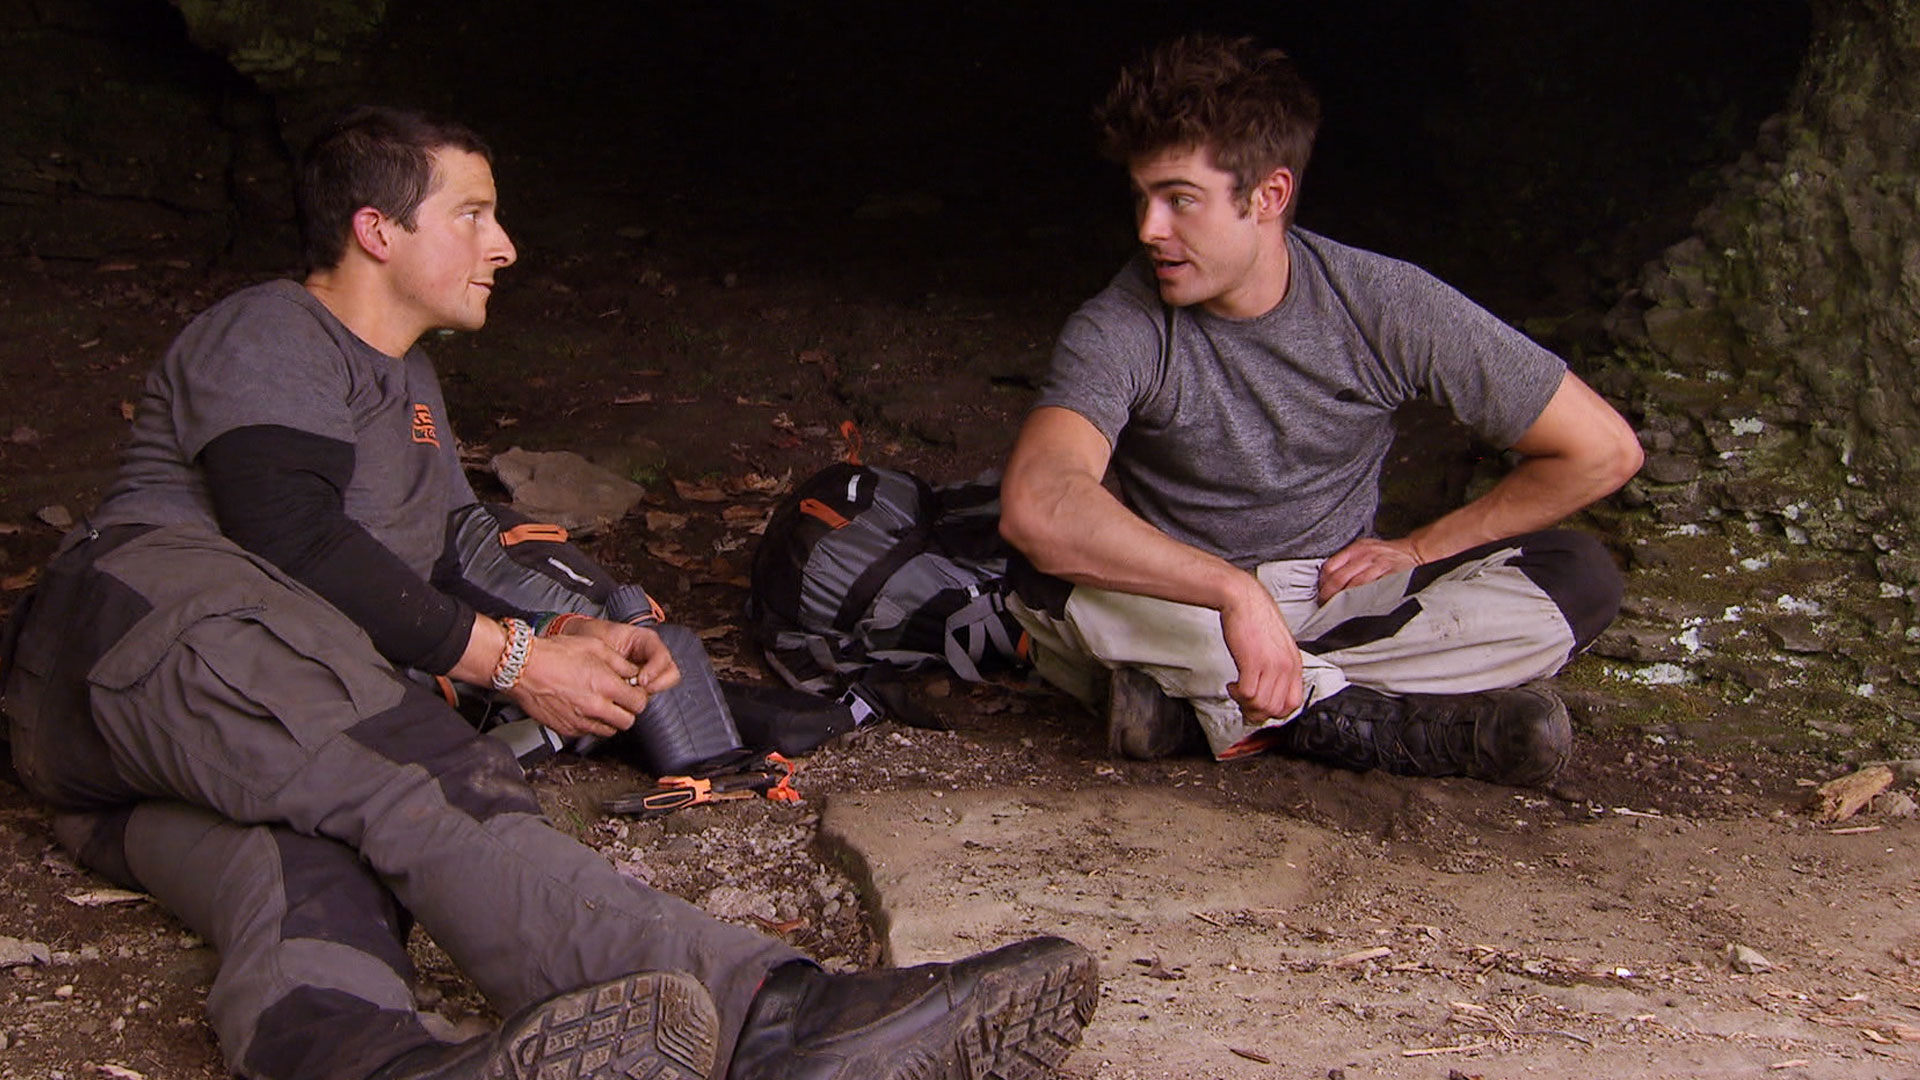 Running Wild With Bear Grylls Episode 1 Zac Efron Review F F Sports